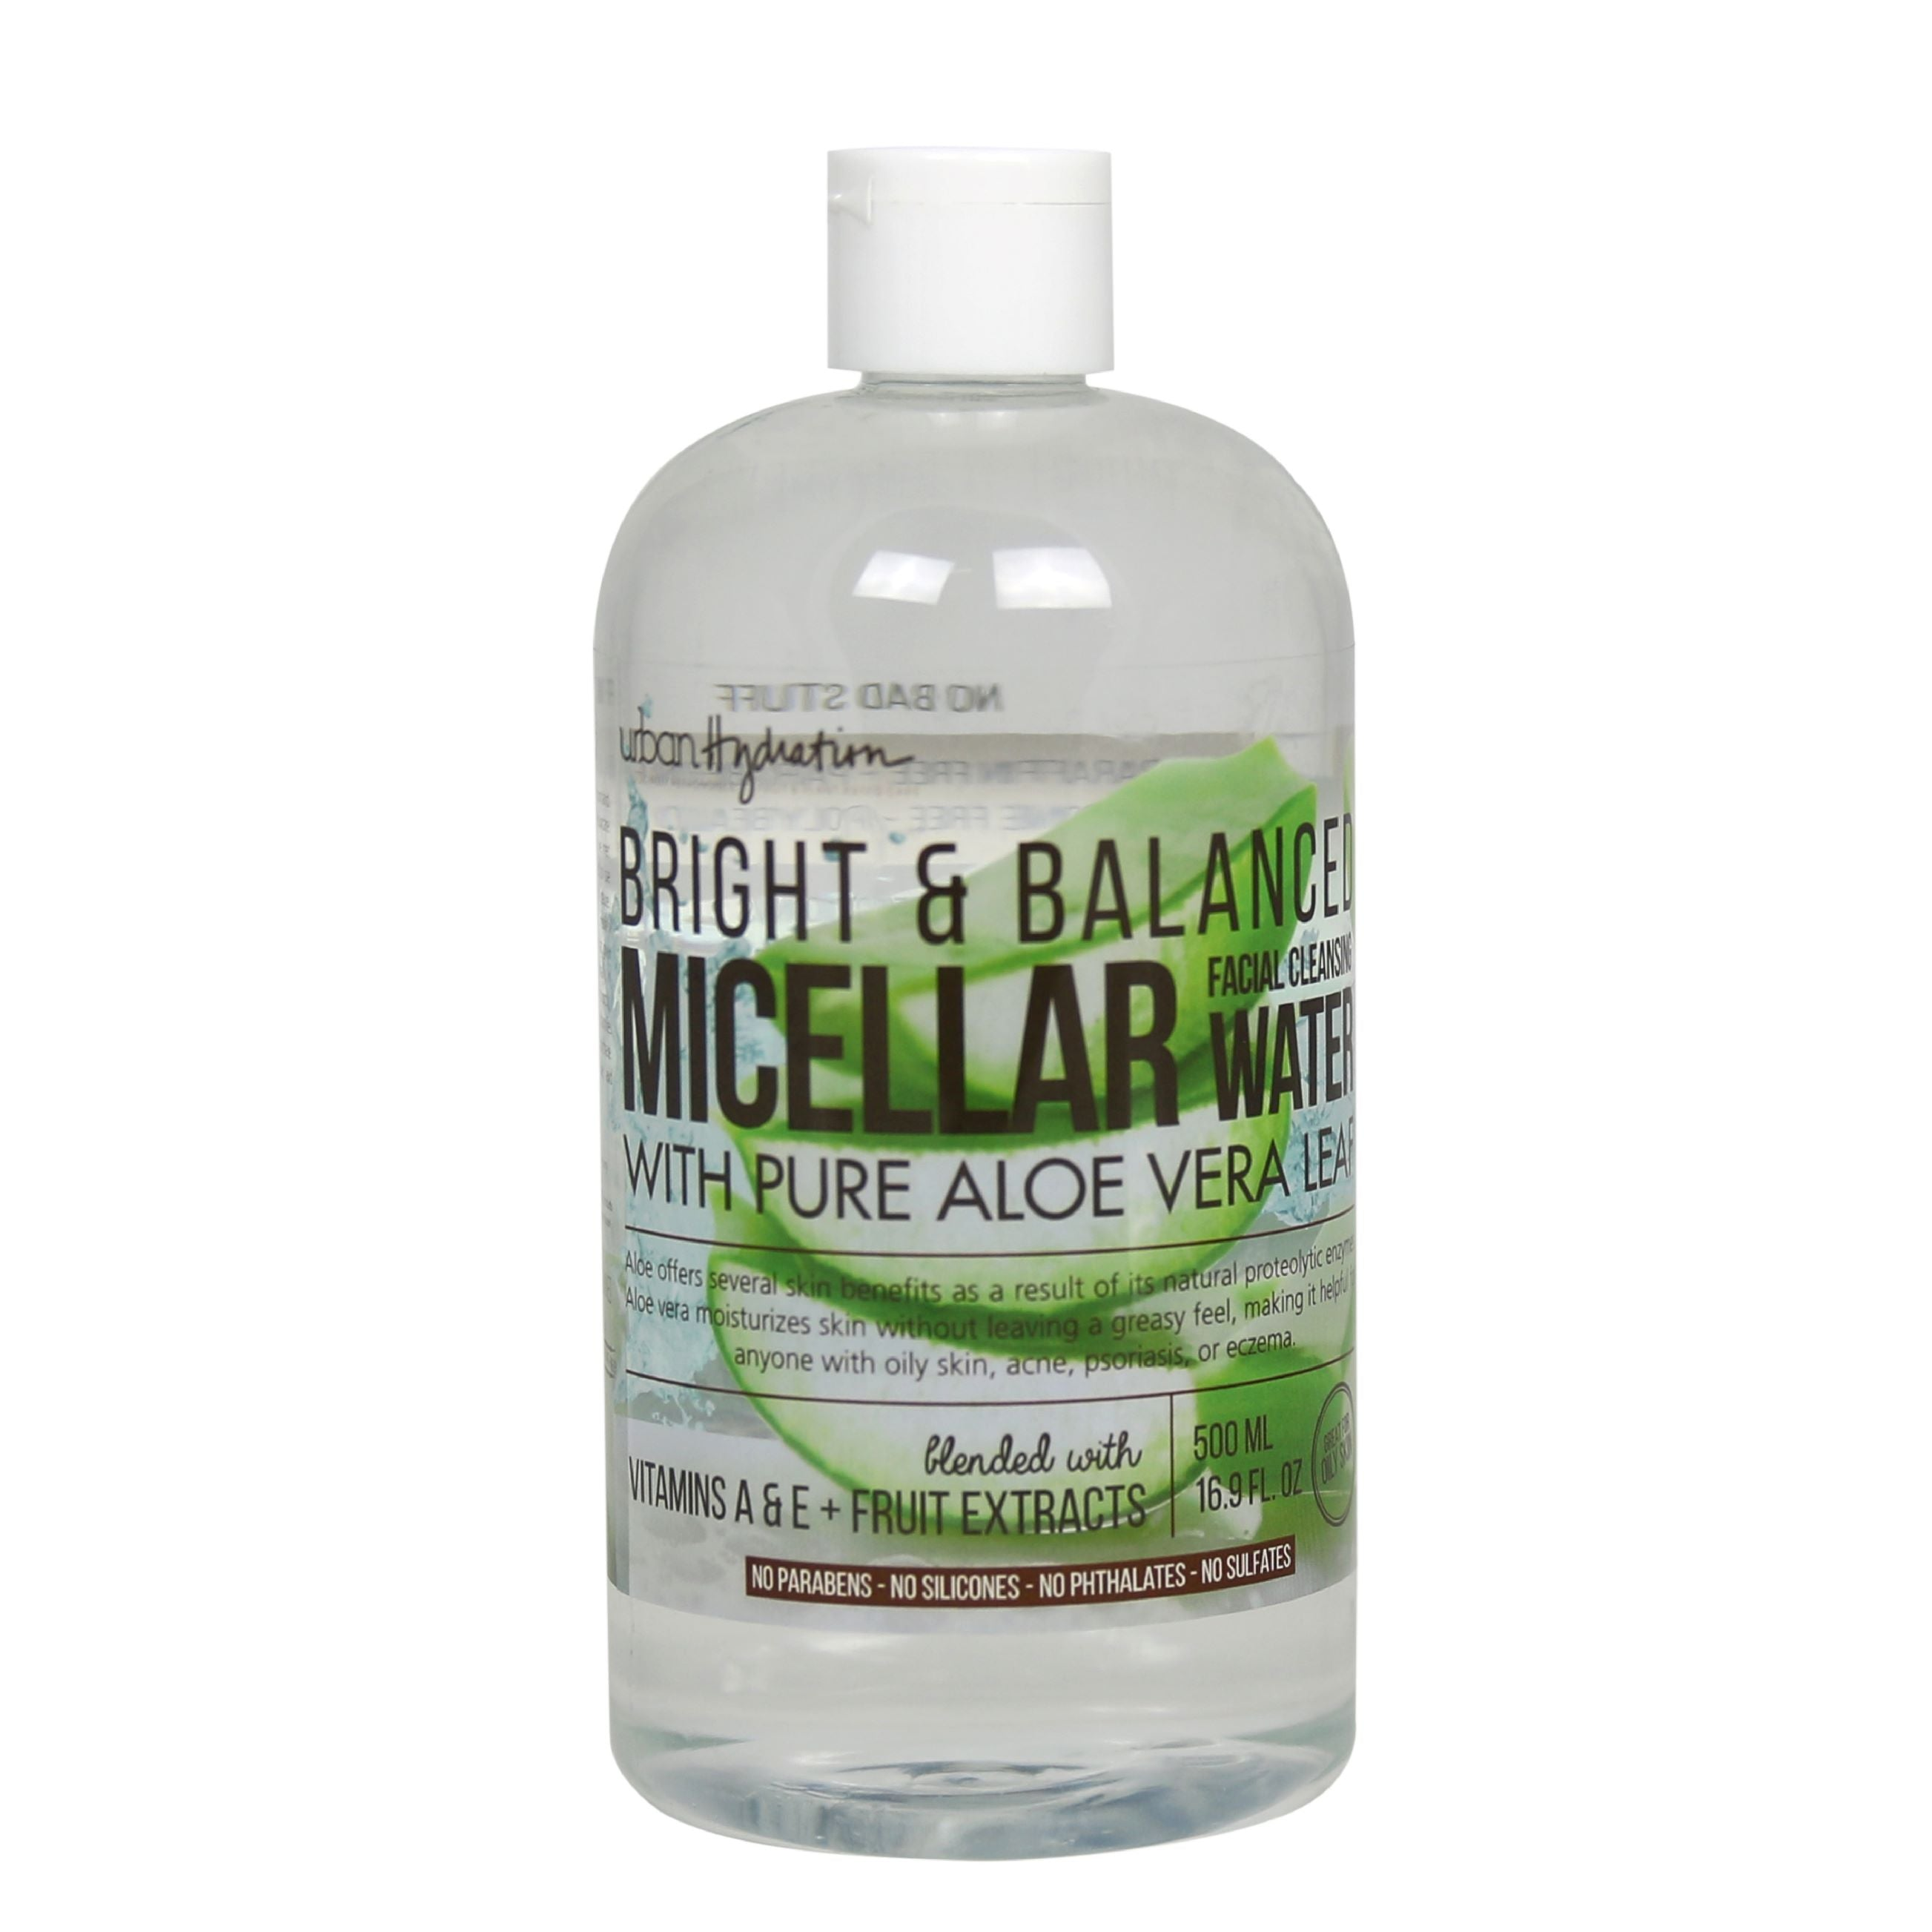 Bright & Balanced Aloe Vera Premium Skincare - 6pc Set